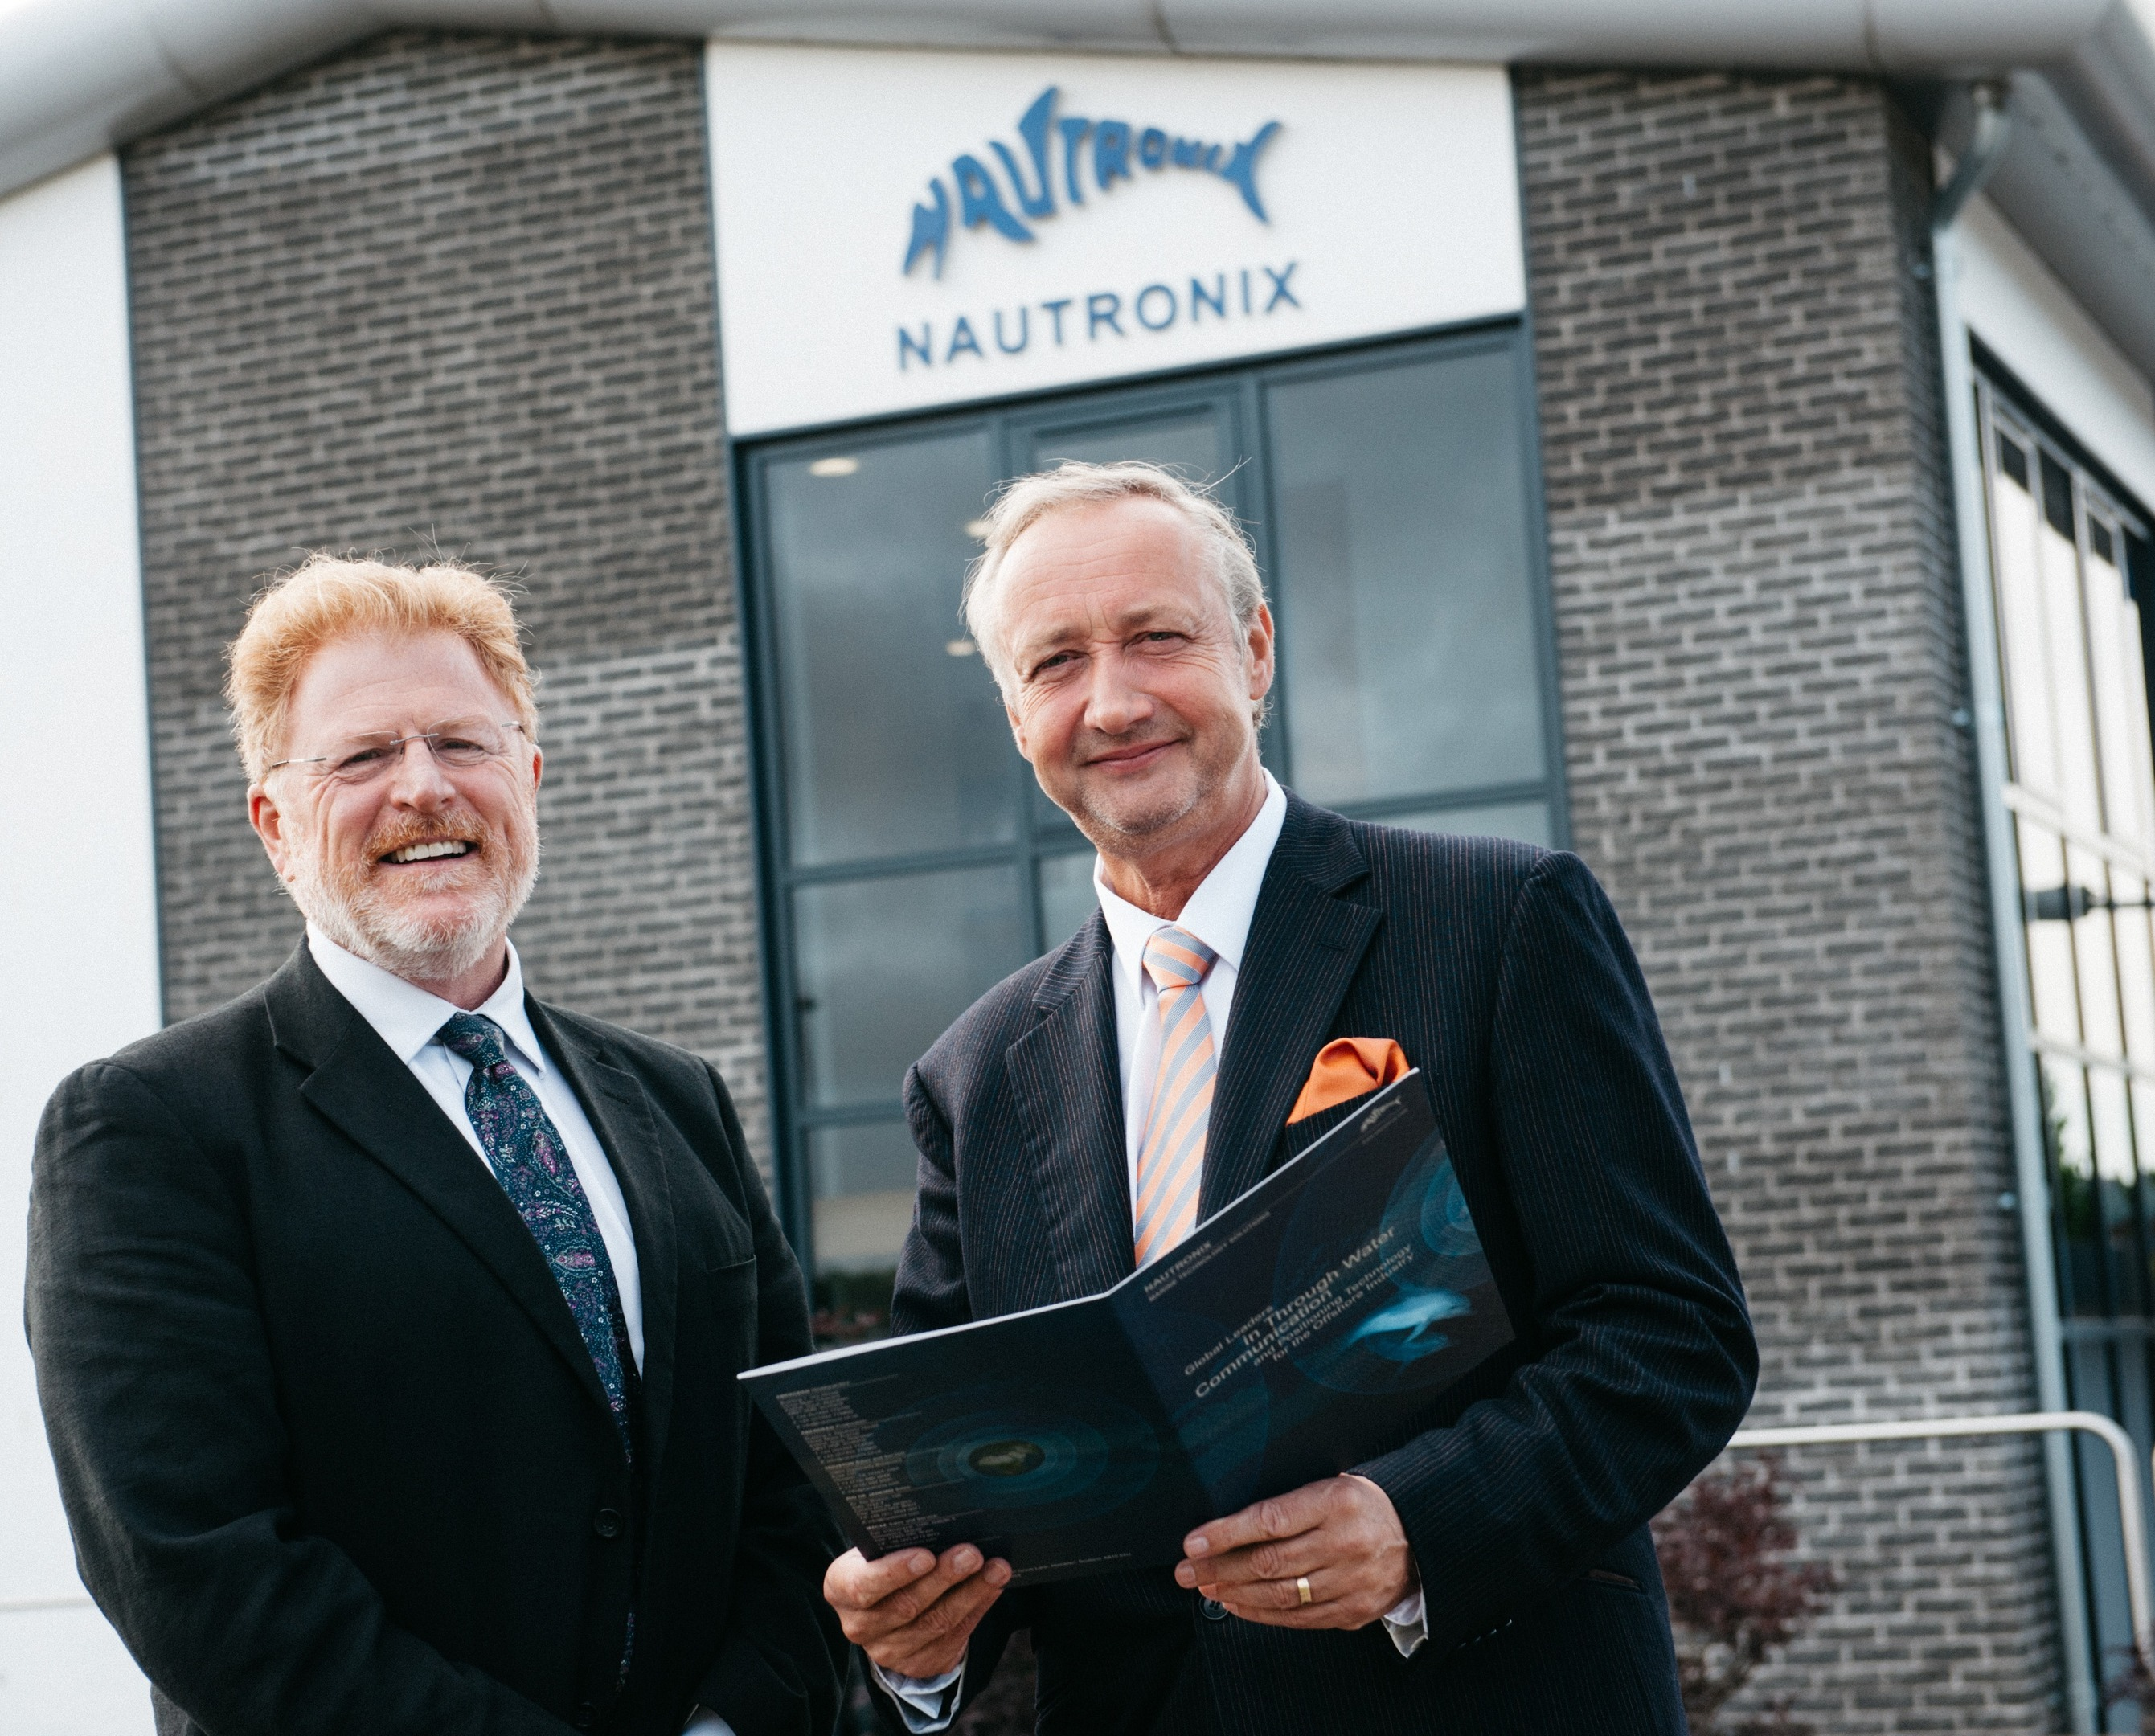 Proserv, which acquired Nautronix in 2015, has sold the business to Imenco. Pictured is David Lamont, former CEO of Proserv (l), Mark Patterson, Nautronix